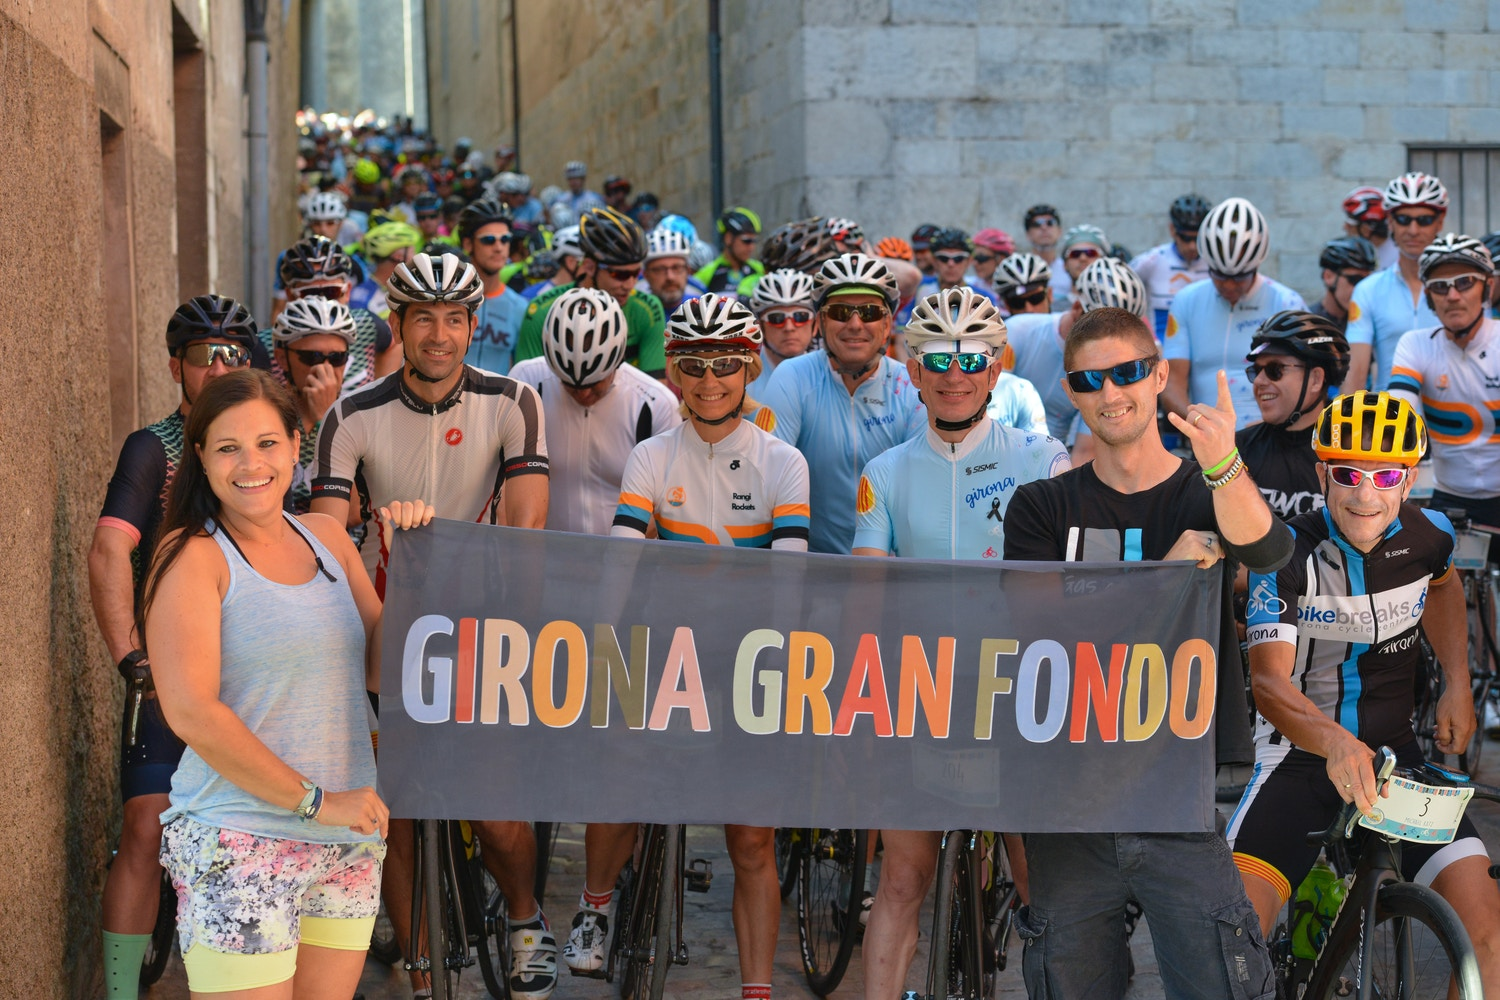 Looking for an authentic, intimate, Euro Gran Fondo? Head to Girona!